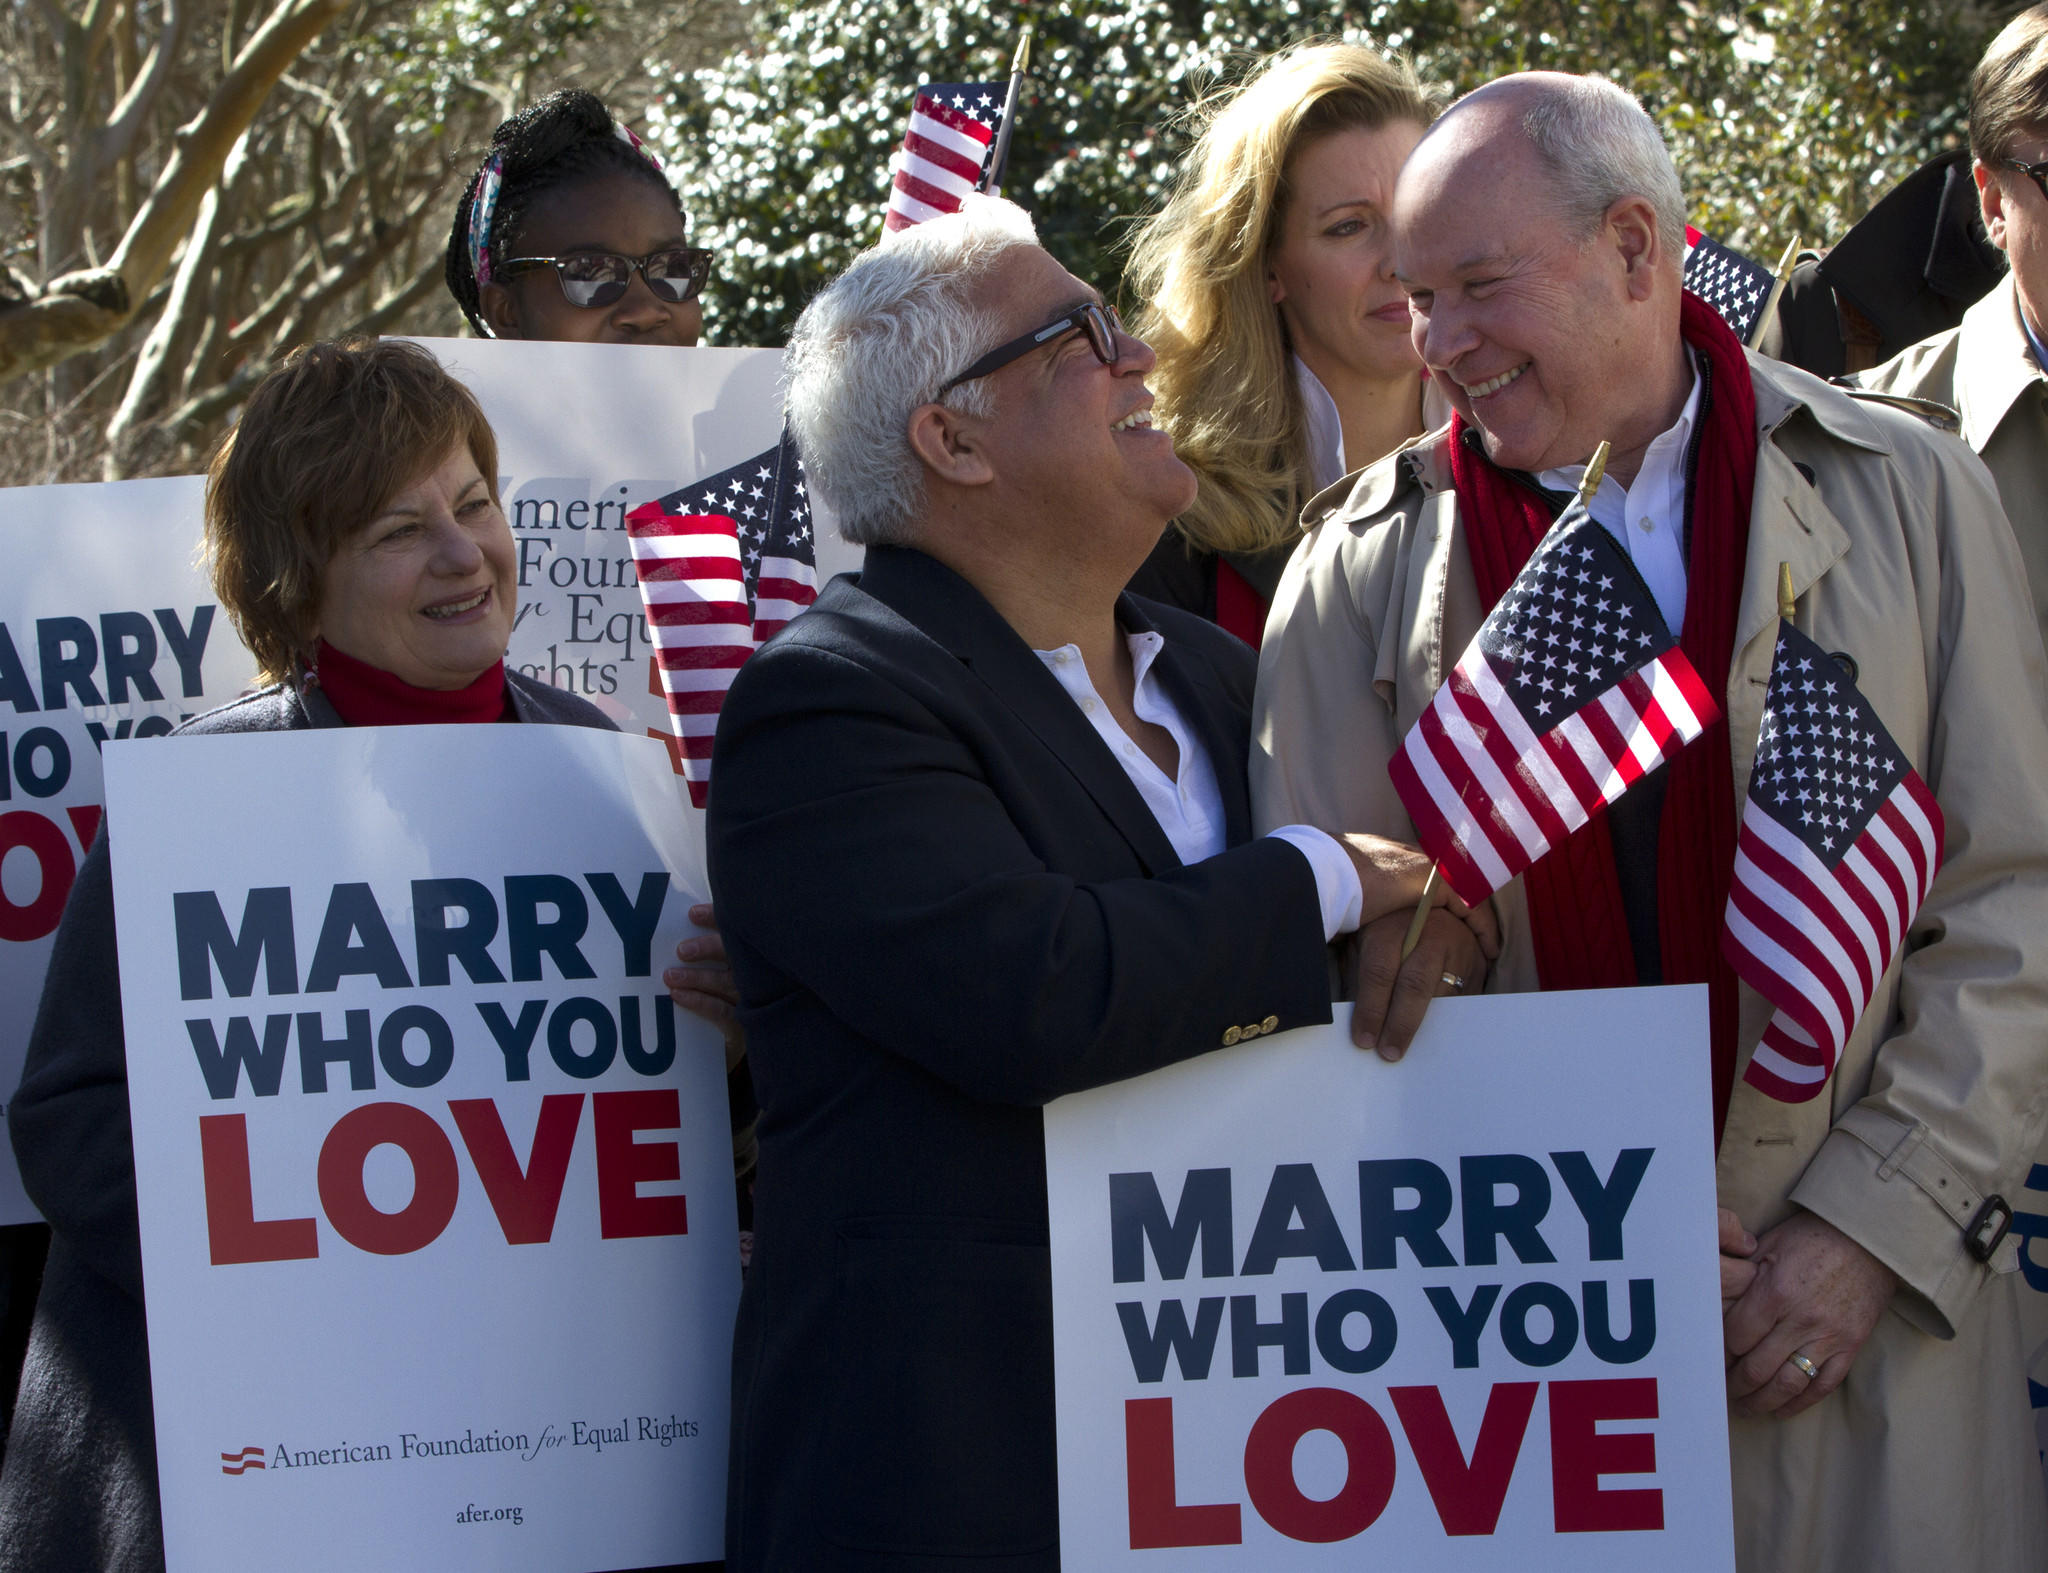 Supporters of gay marriage were ecstatic during a press conference Friday after a Norfolk Federal judge ruled the ban on gay marriage unconstitutional. The group was attending a press conference on the issue in Norfolk Friday. Shown are Cindy Cutler of Norfolk, Dominique Spencer, of Midlothian, Andria McClellan, of Norfolk, Robert Roman and Claus Ihlemann of Virginia Beach.